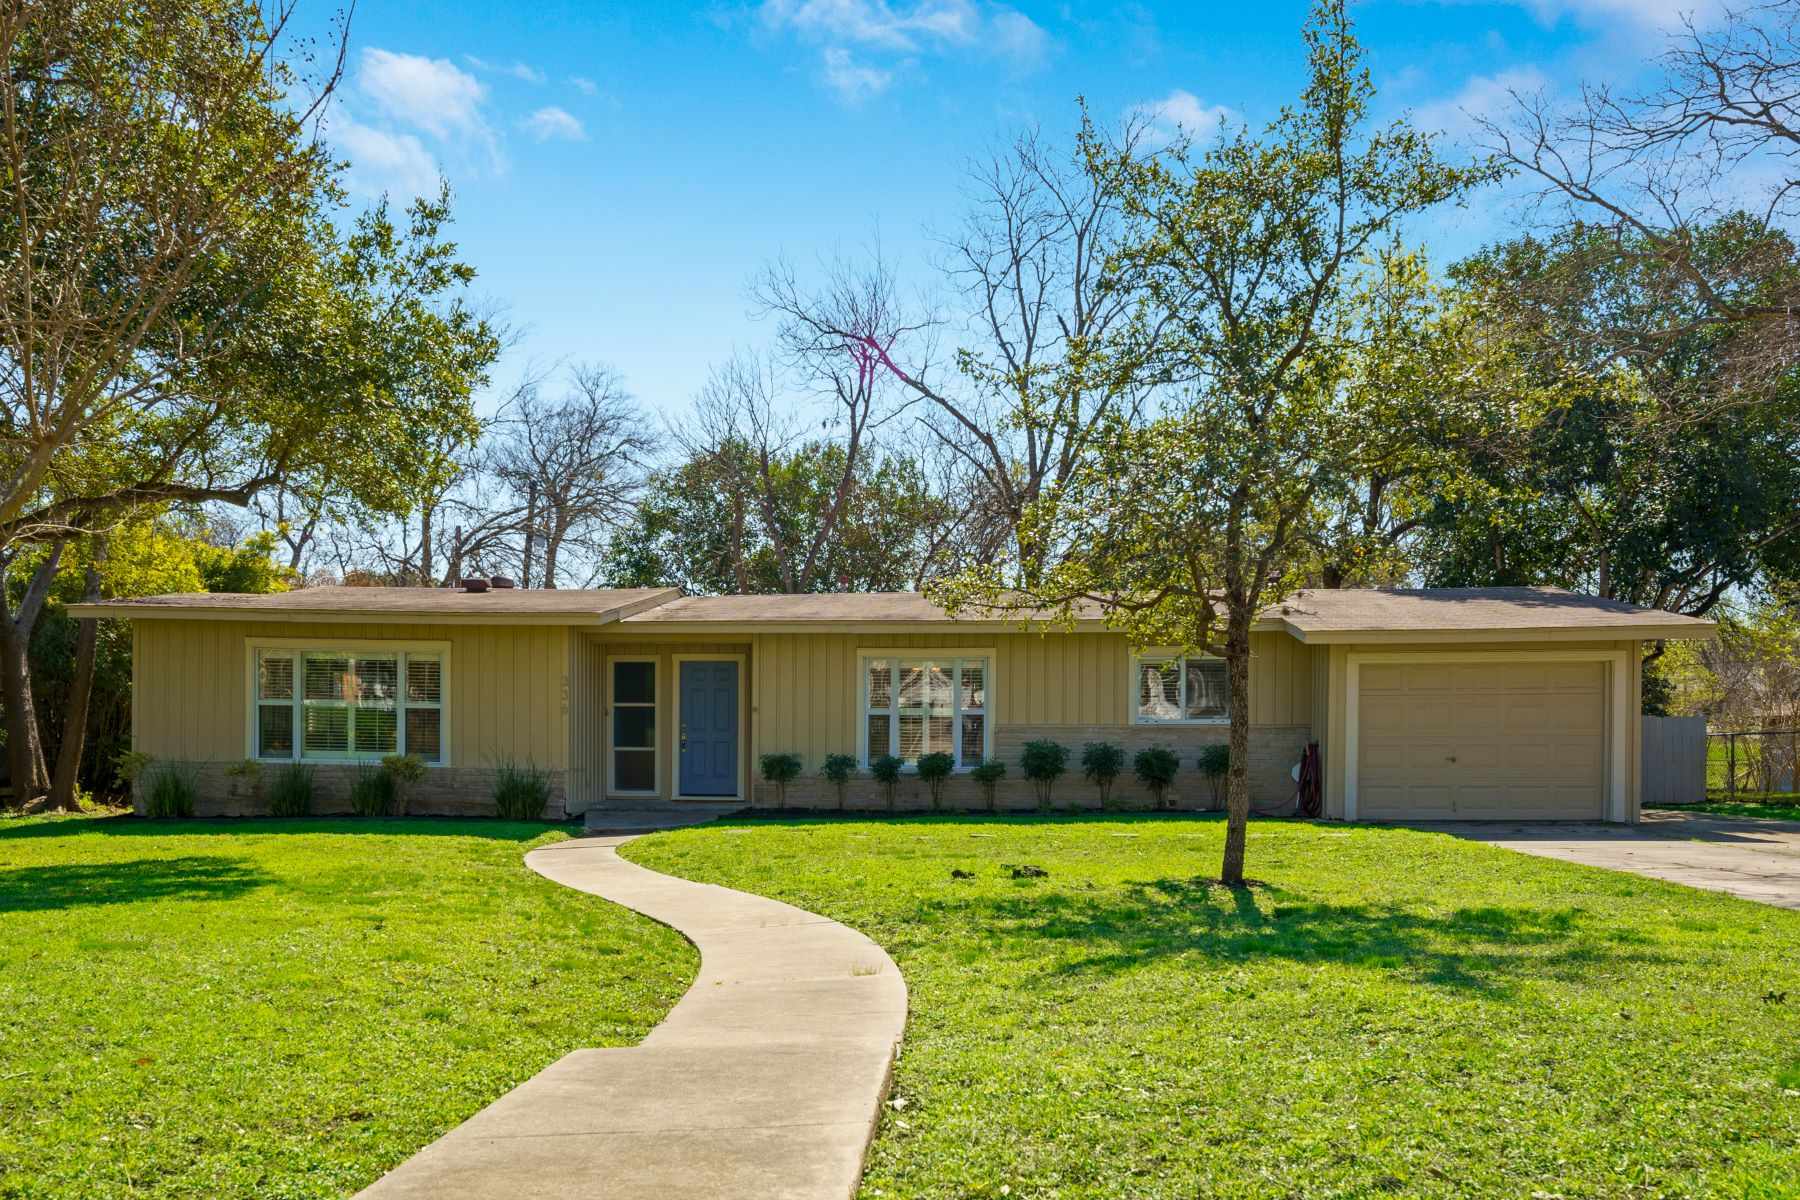 Single Family Homes for Active at 336 Tuttle Road, Terrell Hills, TX 78209 336 Tuttle Road Terrell Hills, Texas 78209 United States